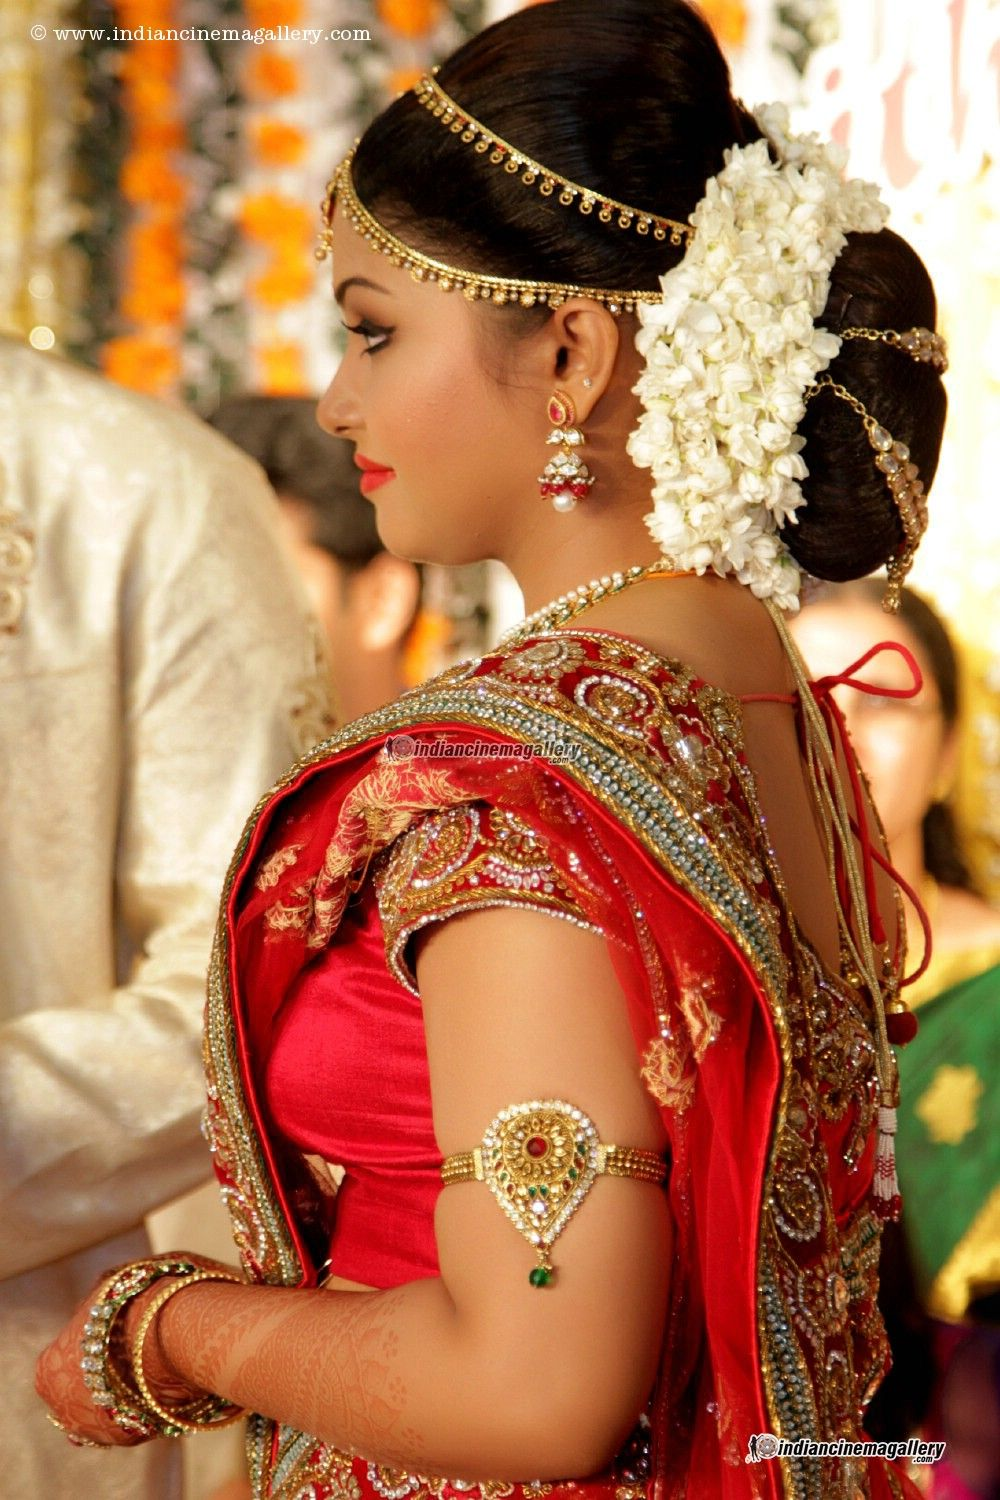 Traditional Southern Indian Bride Wearing Bridal Silk Saree Jewellery And Hairstyle In Indian Wedding Hairstyles Indian Bridal Hairstyles Bridal Hair Images